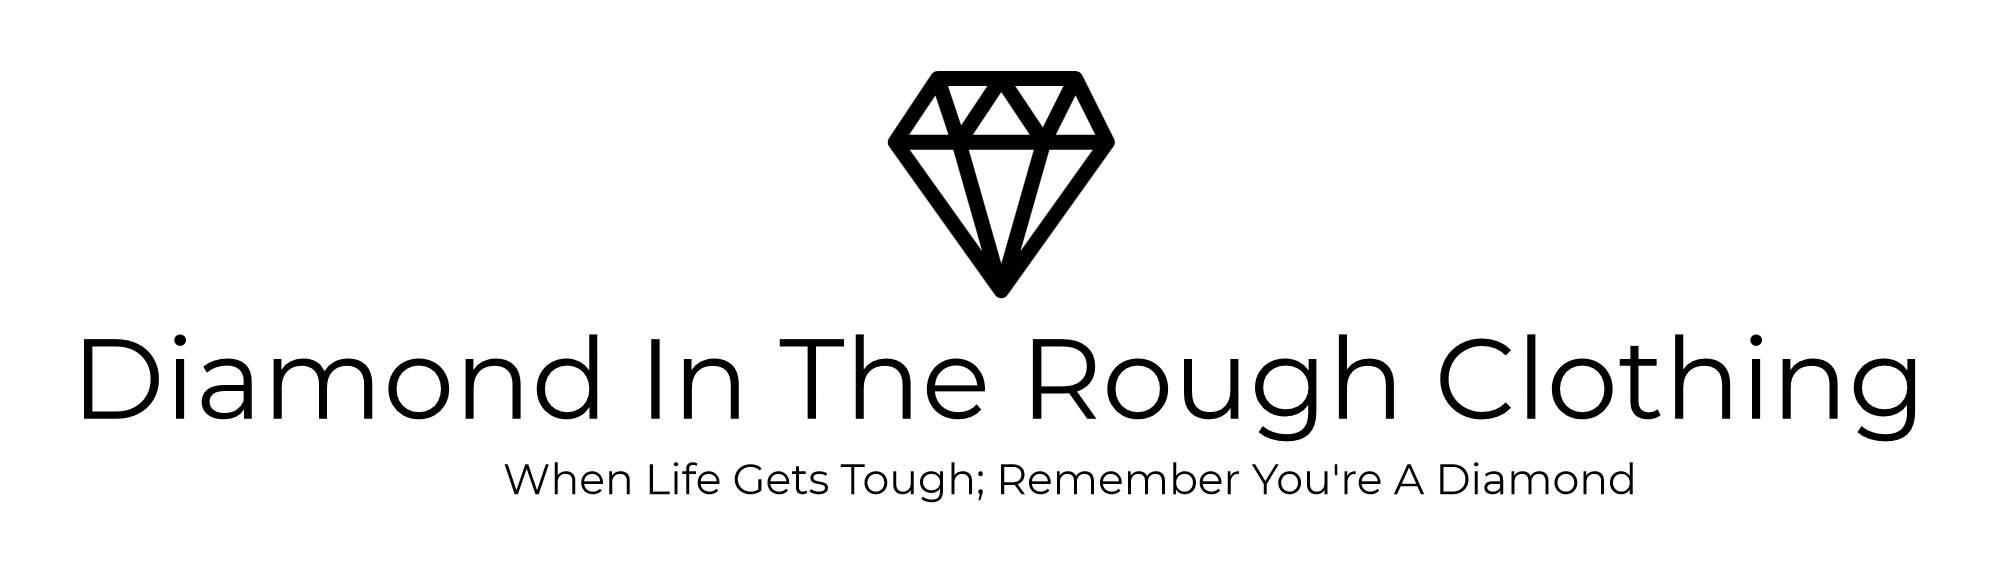 Diamond In The Rough Clothing-logo.jpg